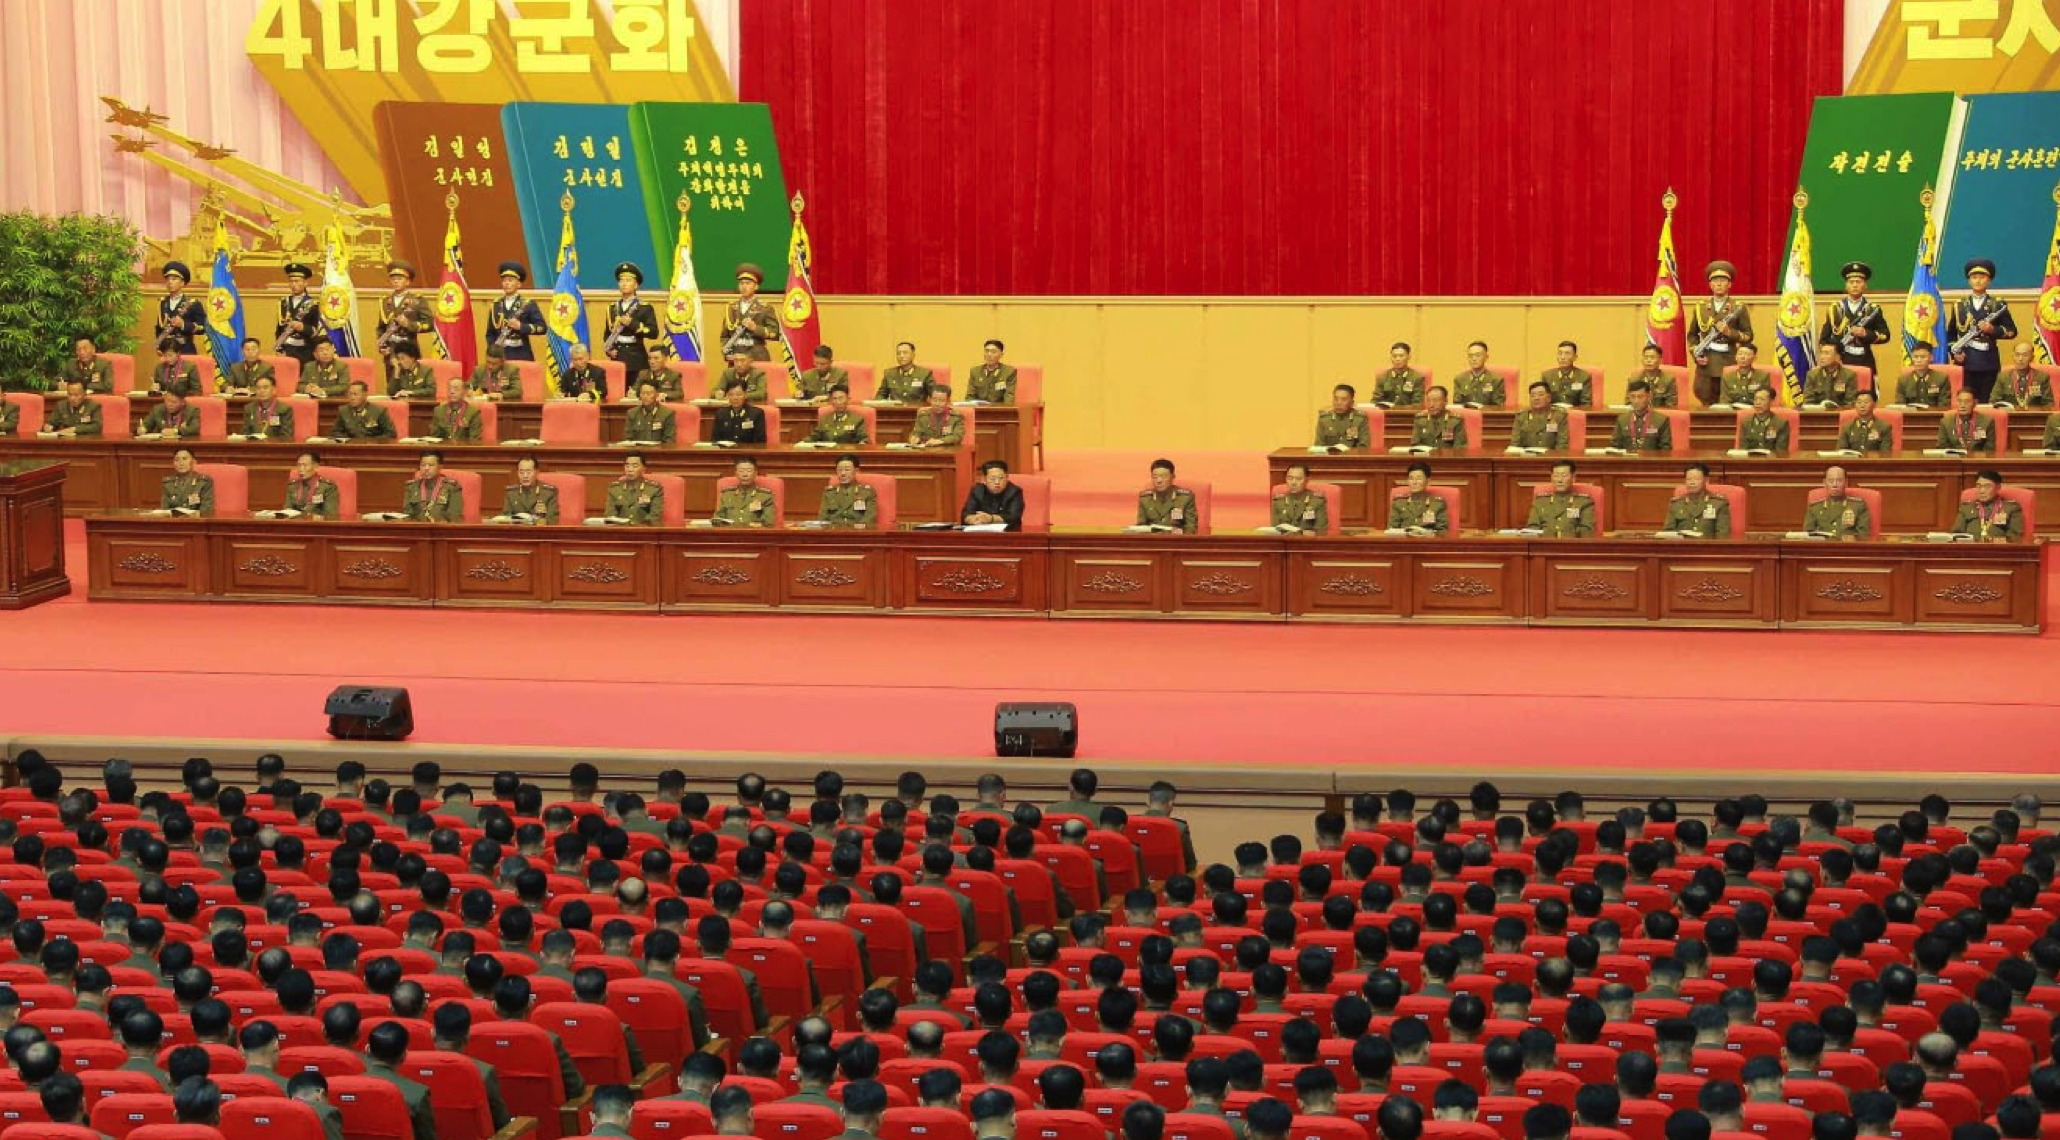 View of the platform of the 7th National Meeting of Military Education Officers, held at April 25 House of Culture in Pyongyang on Novmeber 3 and November 4, 2015 (Photos: Rodong Sinmun).